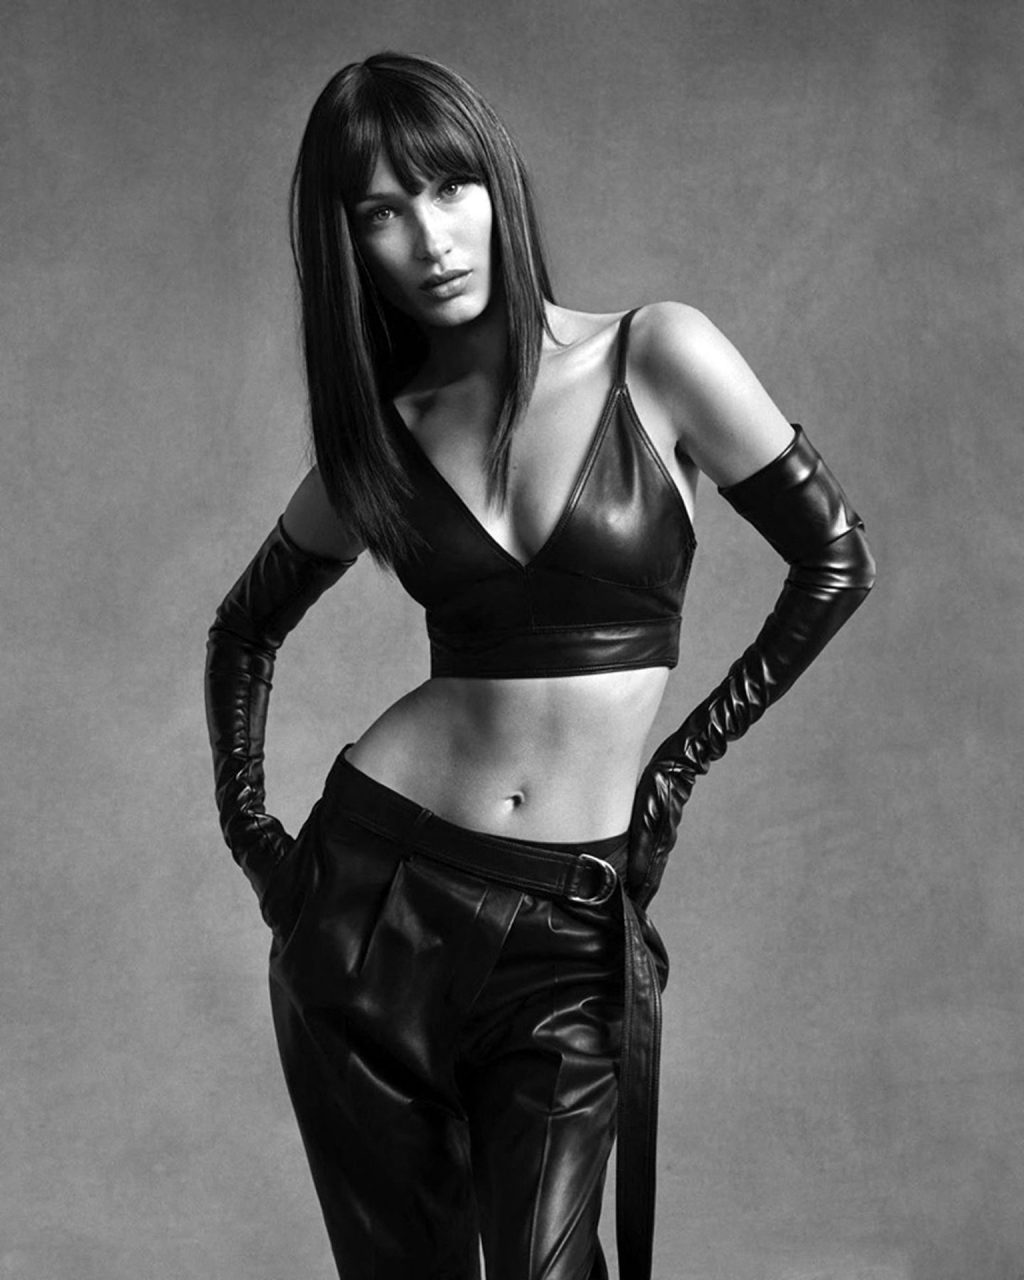 Bella Hadid Poses for Helmut Lang's Fall 2020 Black & White Campaign (5 Photos)